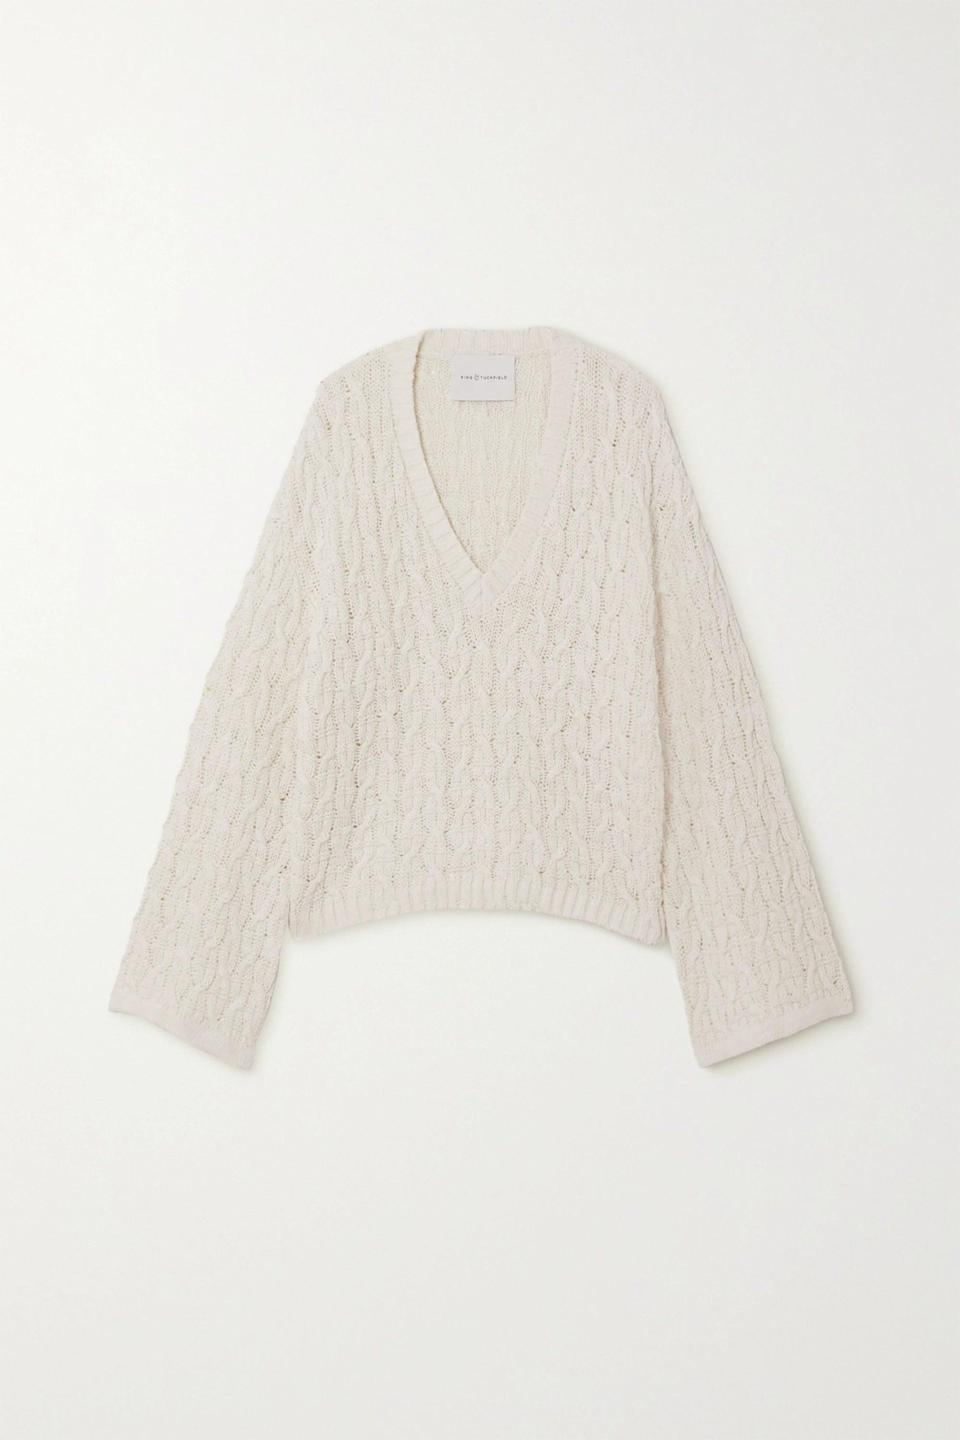 "<br><br><strong>King & Tuckfield</strong> Cable-Knit Linen and Cotton-Blend Sweater, $, available at <a href=""https://www.net-a-porter.com/en-gb/shop/product/king-and-tuckfield/cable-knit-linen-and-cotton-blend-sweater/1214063"" rel=""nofollow noopener"" target=""_blank"" data-ylk=""slk:Net-A-Porter"" class=""link rapid-noclick-resp"">Net-A-Porter</a>"